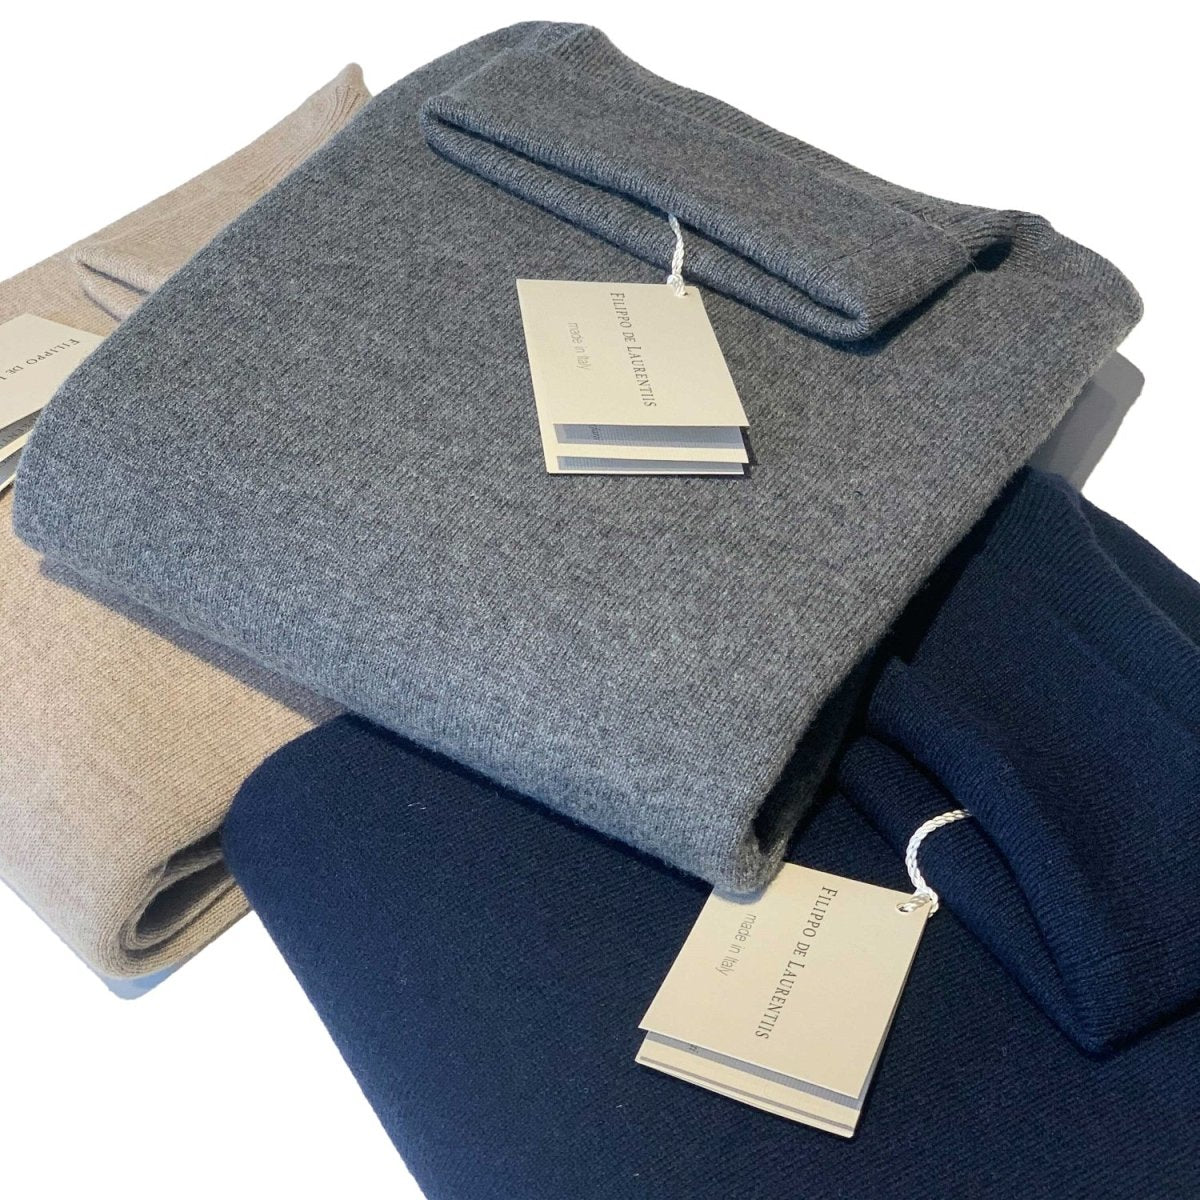 Filippo de Laurentis - Coltrui, Navy, Knitwear | NEW TAILOR Webshop